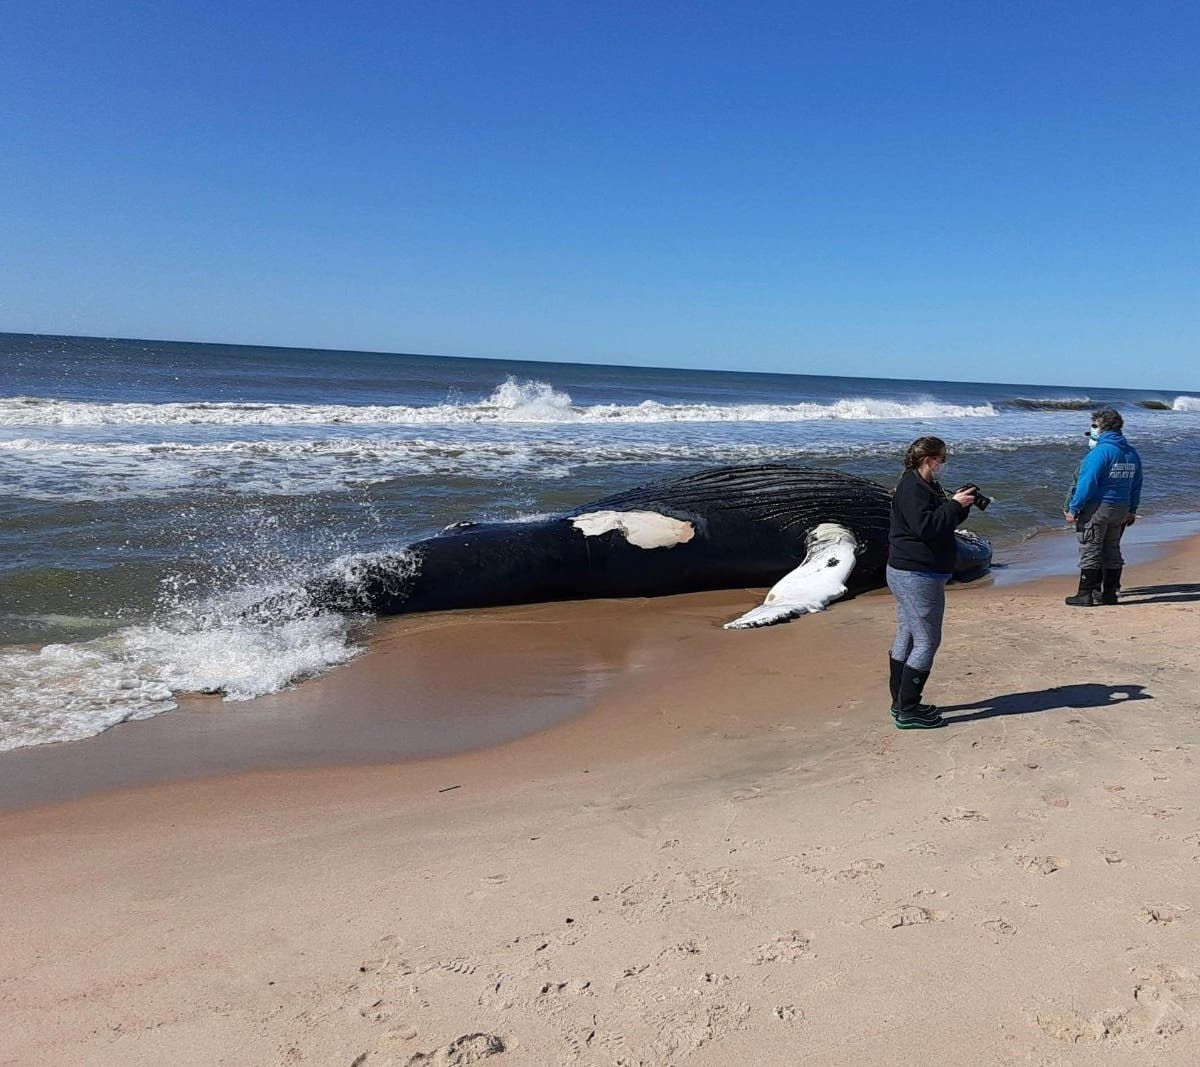 'Suspect Bruising' Found On Dead Whale Washed Up In Amagansett